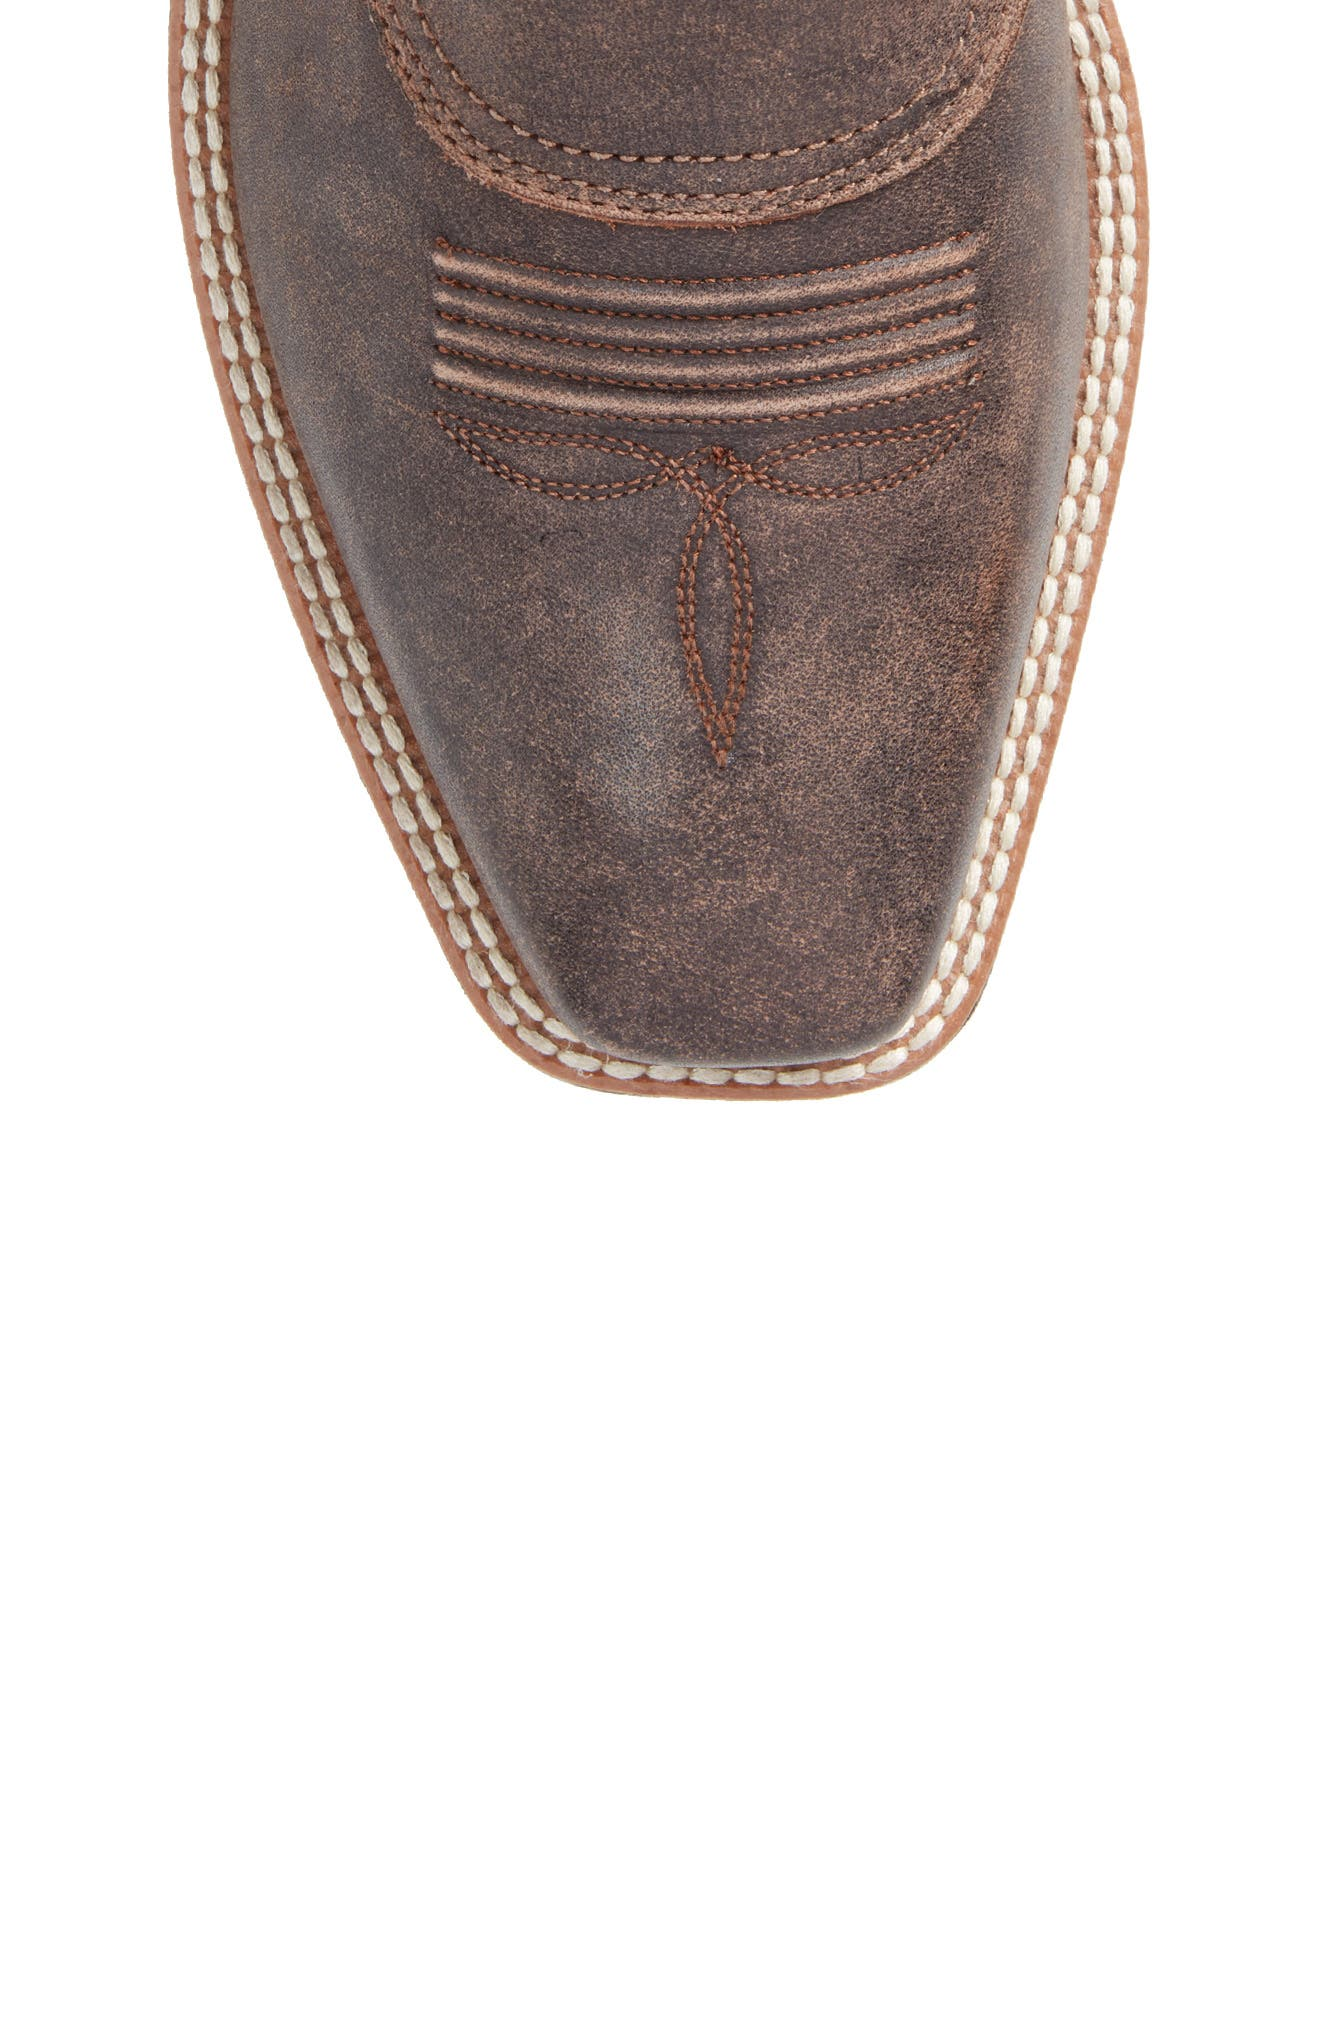 ARIAT,                             High Desert Cowboy Boot,                             Alternate thumbnail 5, color,                             200